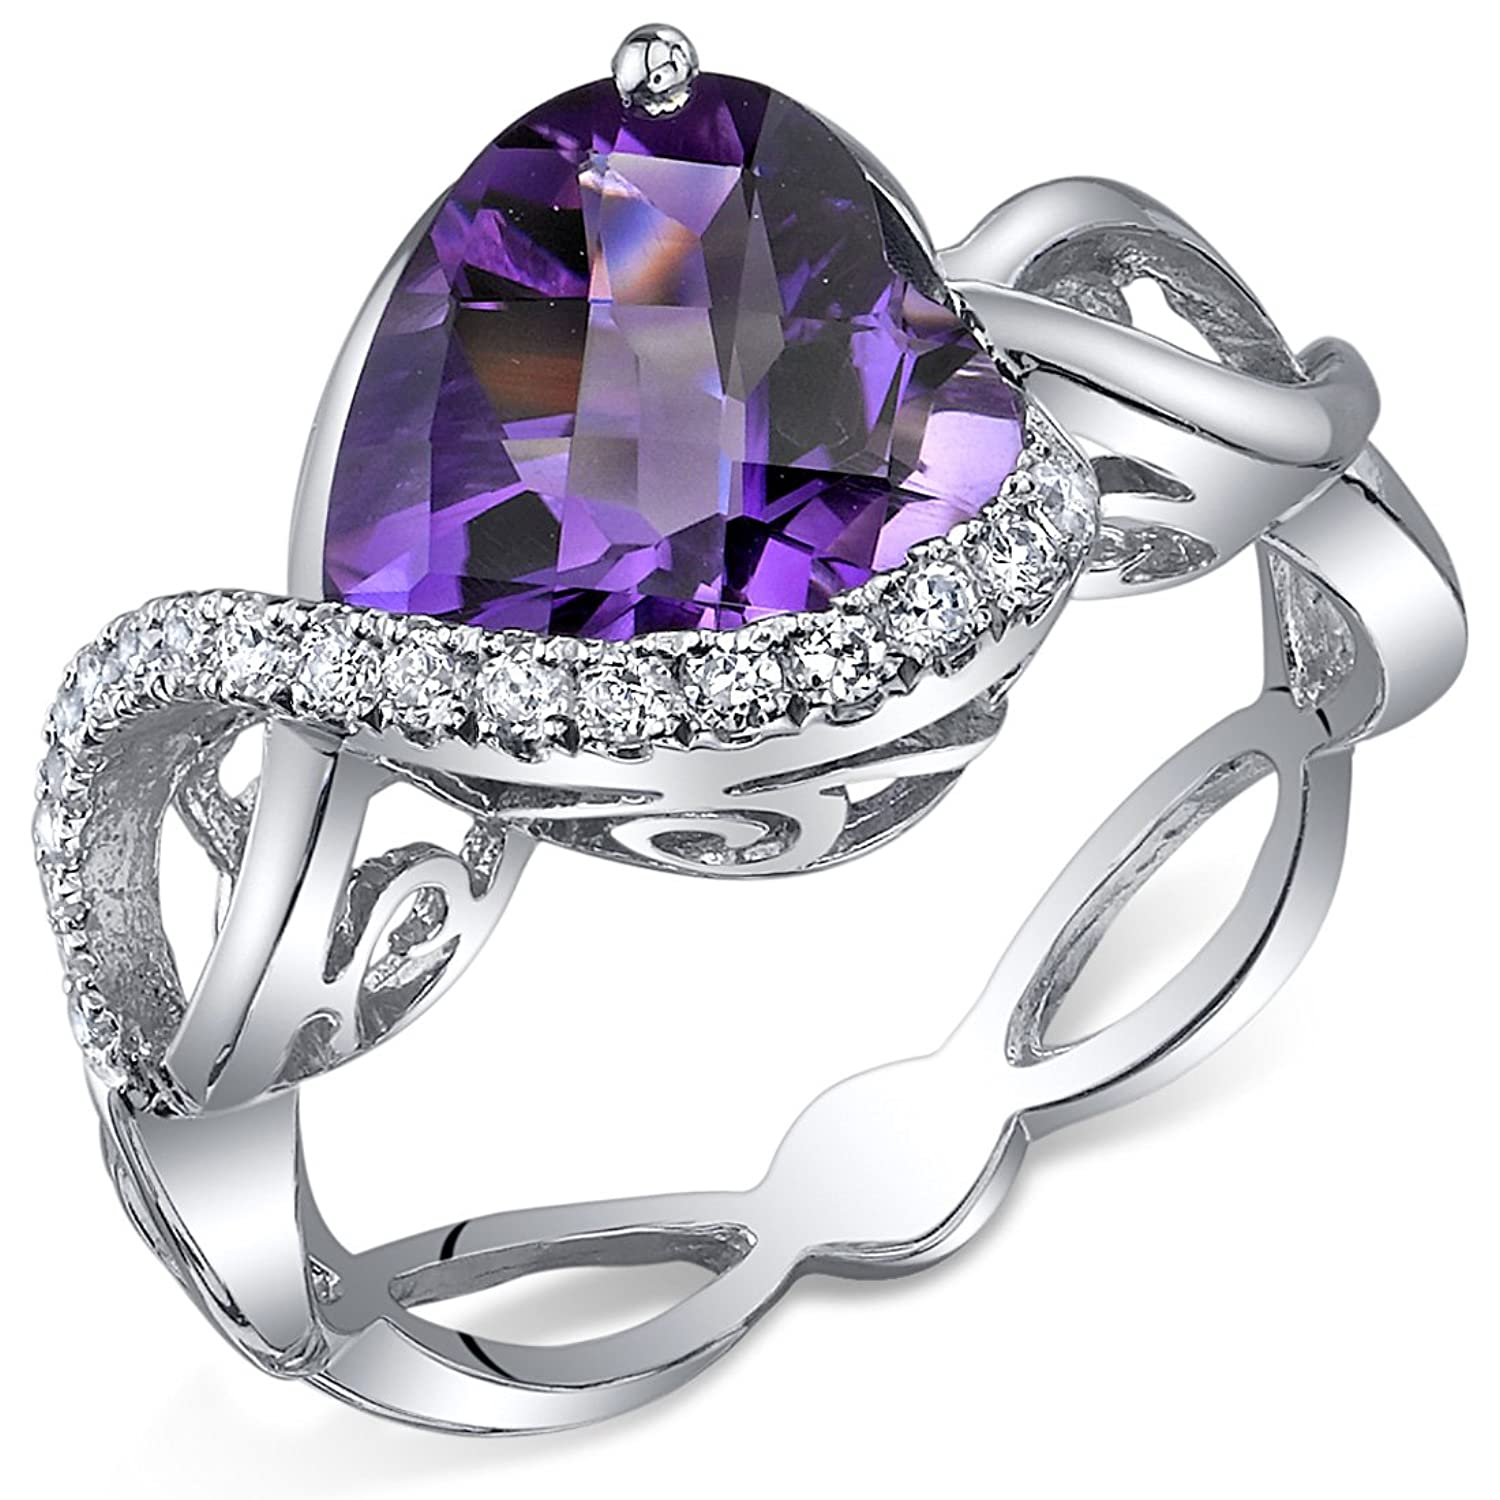 3.00 Carats Amethyst Ring Sterling Silver Heart Shape Swirl Design Sizes 5 to 9